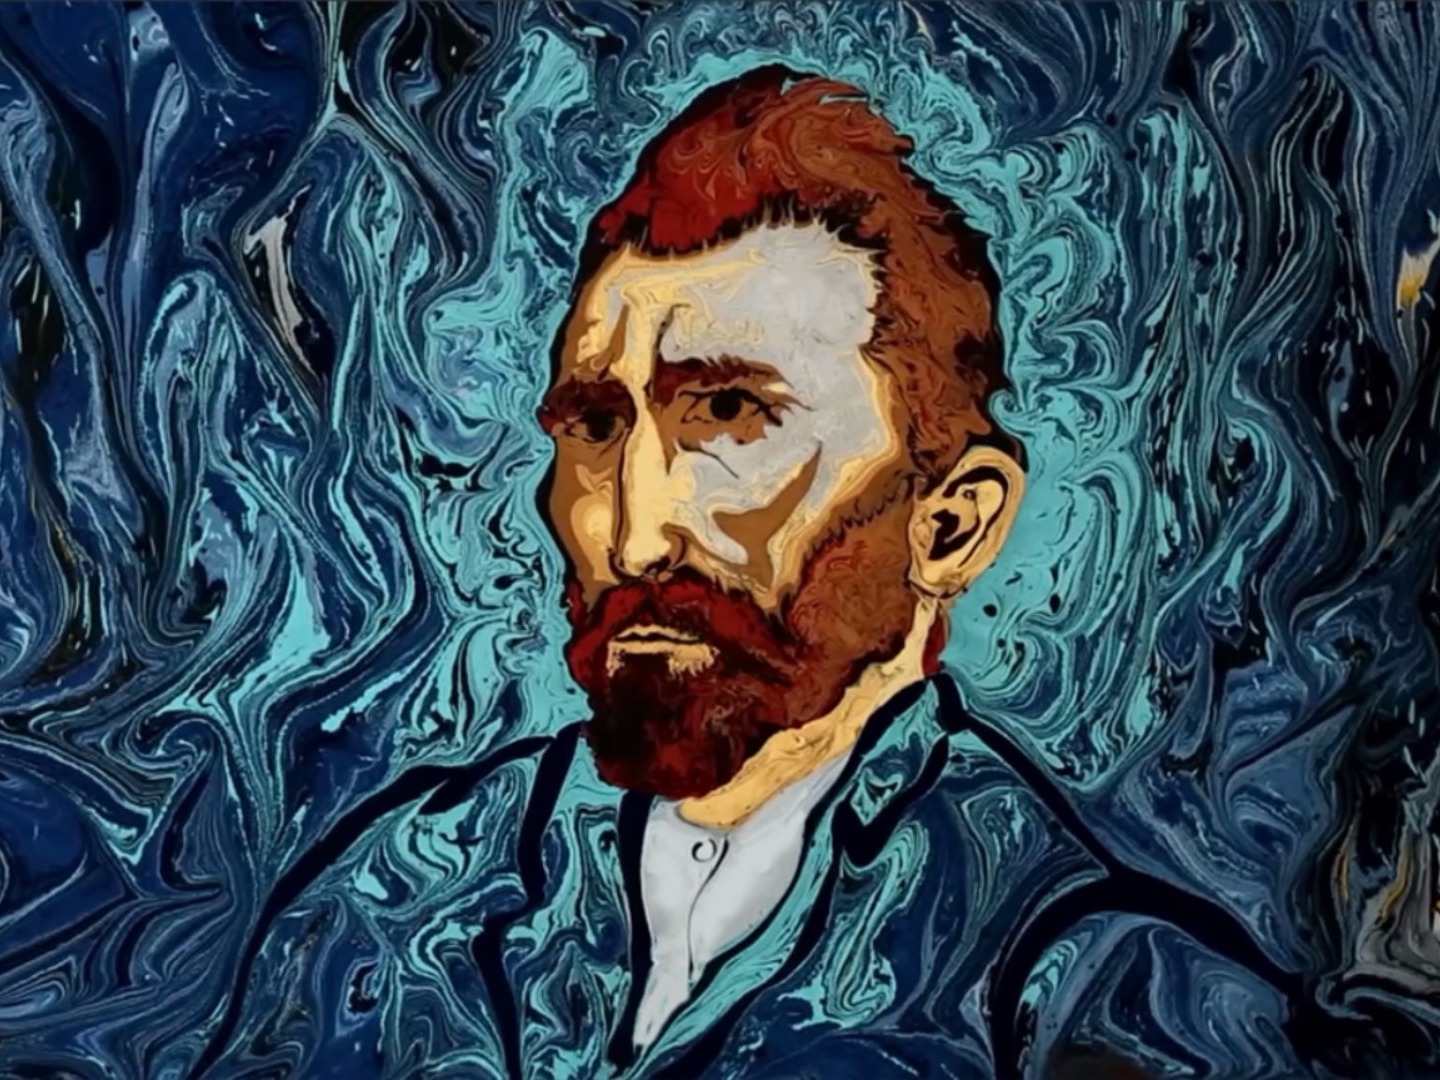 Vincent van Gogh, The Starry Night, Garip Ay, Ebru